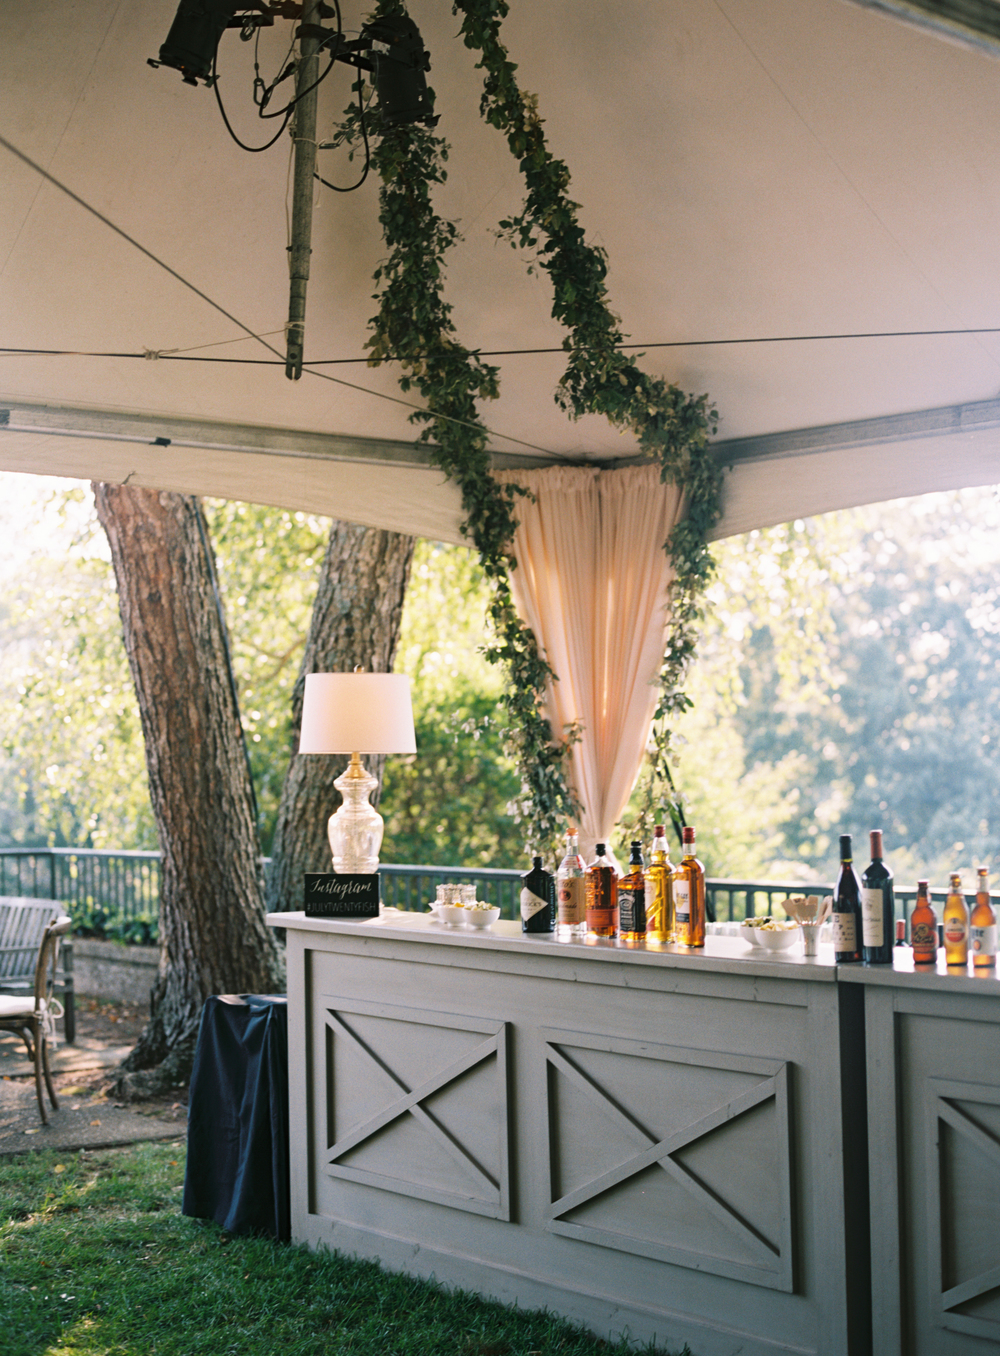 Tent with Garlands of Greenery // Belle Meade Wedding Floral Design